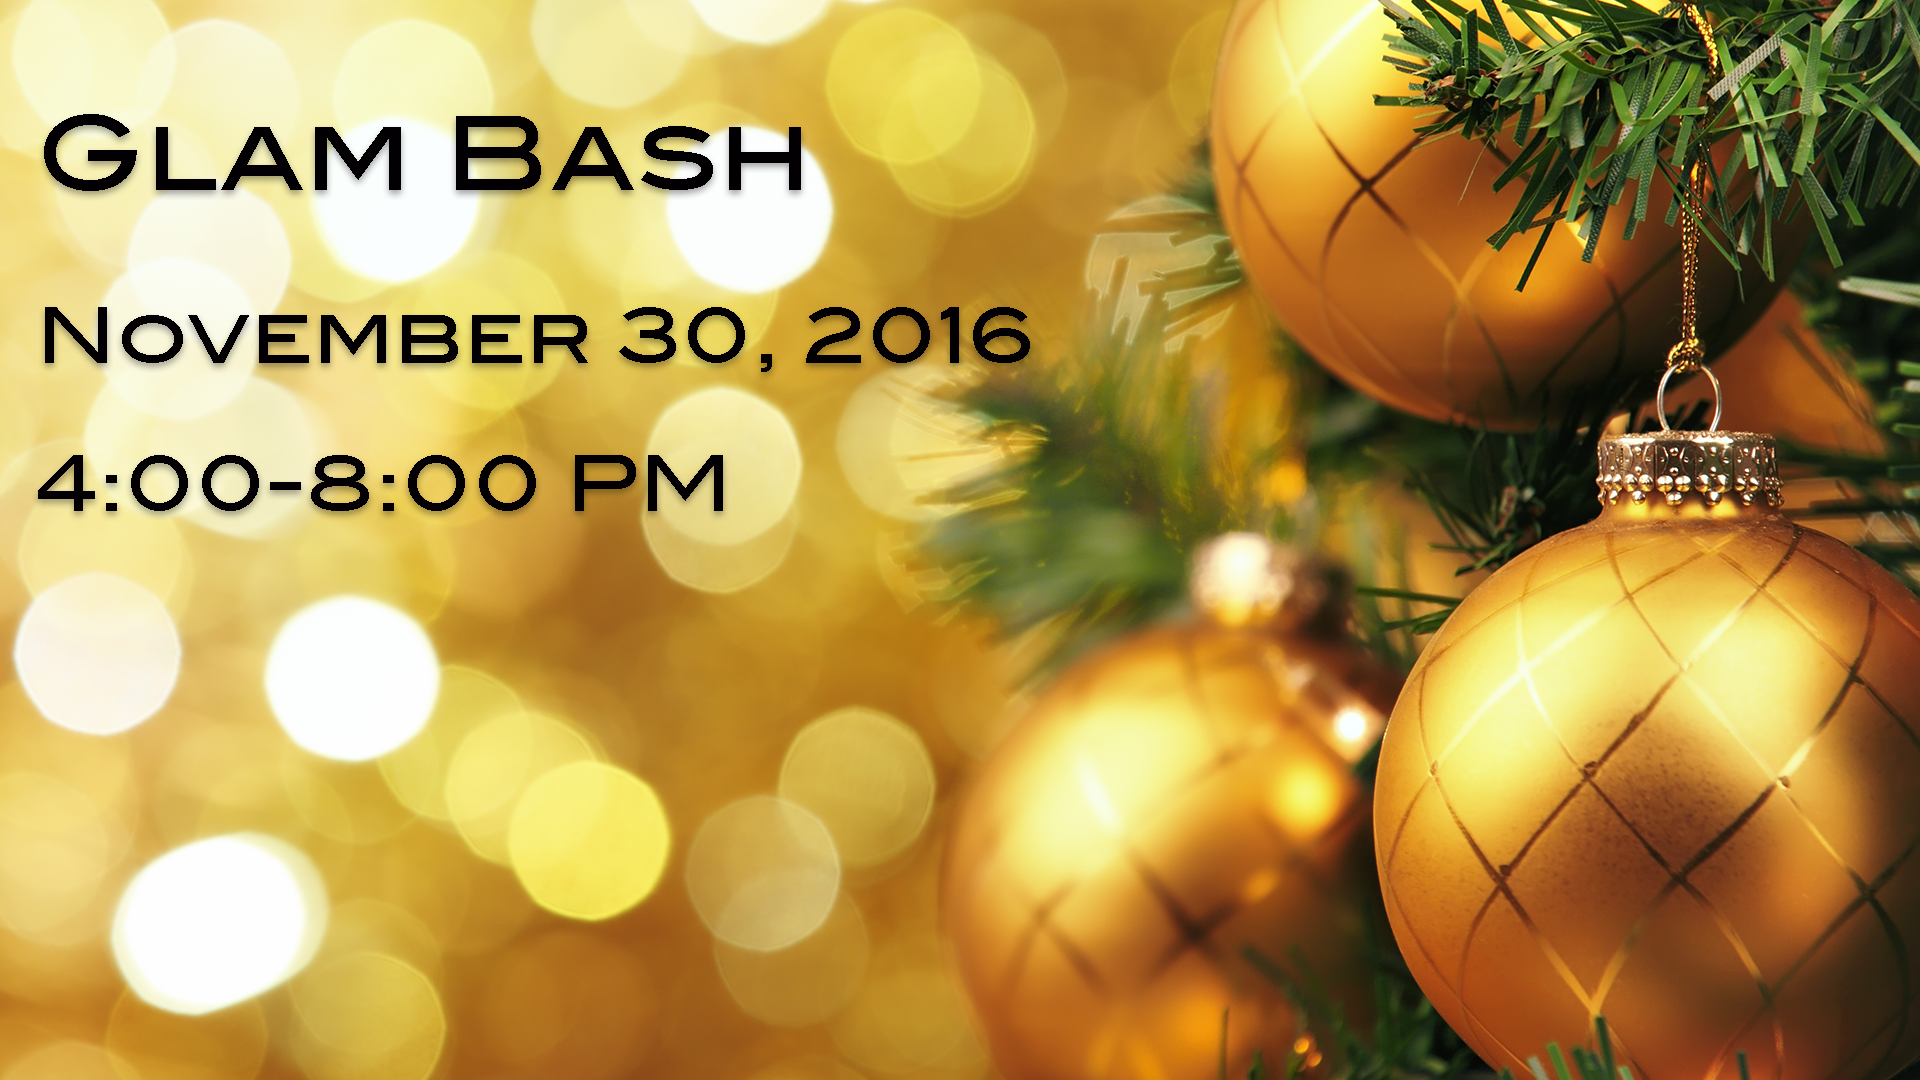 November 30, 2016 from 4-8pm at Esthetics813, 2748 Windguard Cr, Suite 102, Wesley Chapel, FL 33544